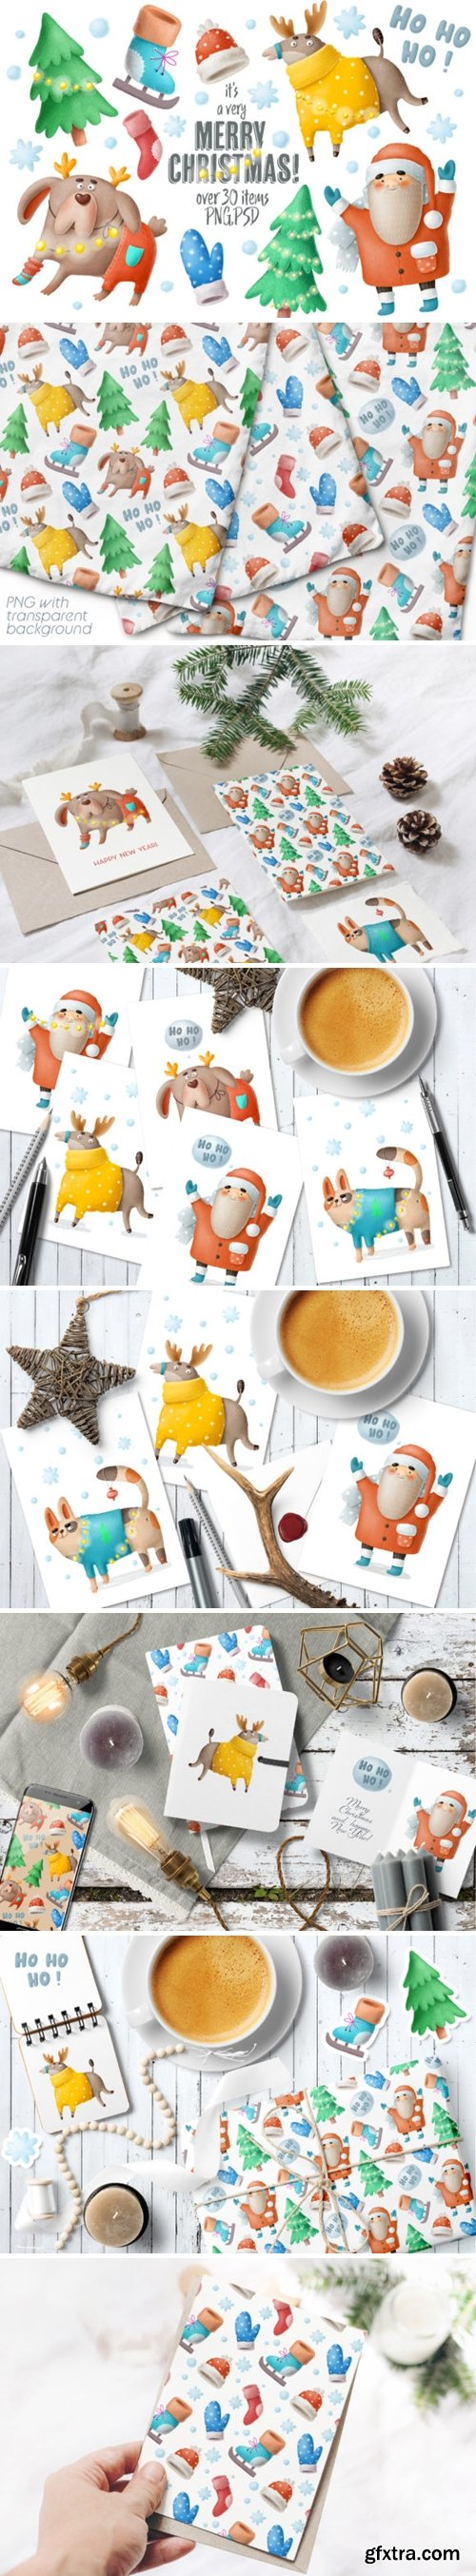 Christmas Clipart and Characters Set 2178307